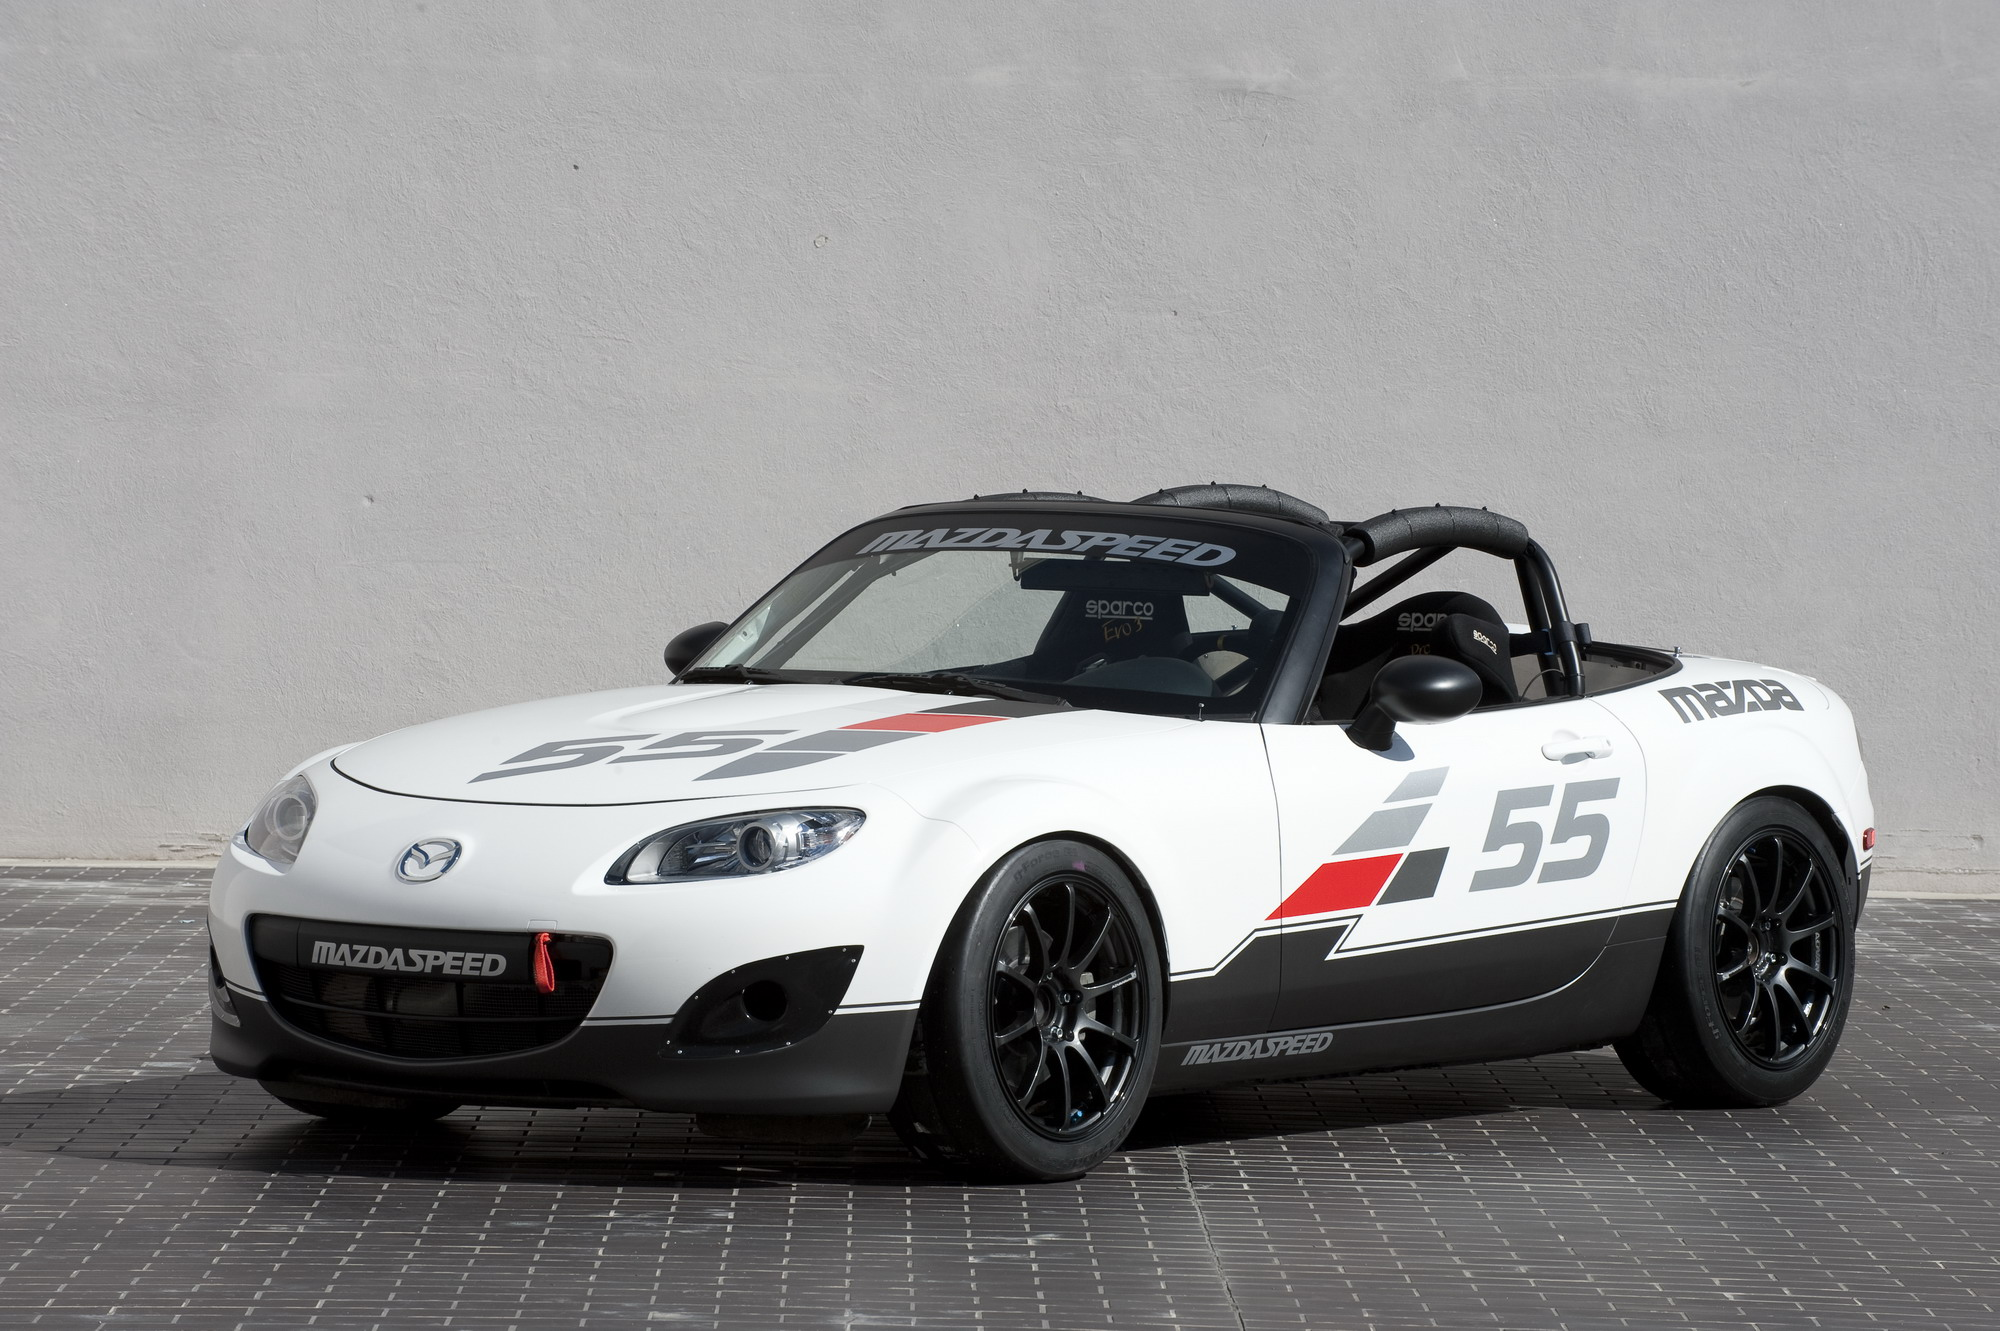 Attractive 2010 Mazda MX 5 Cup Car | Top Speed. »